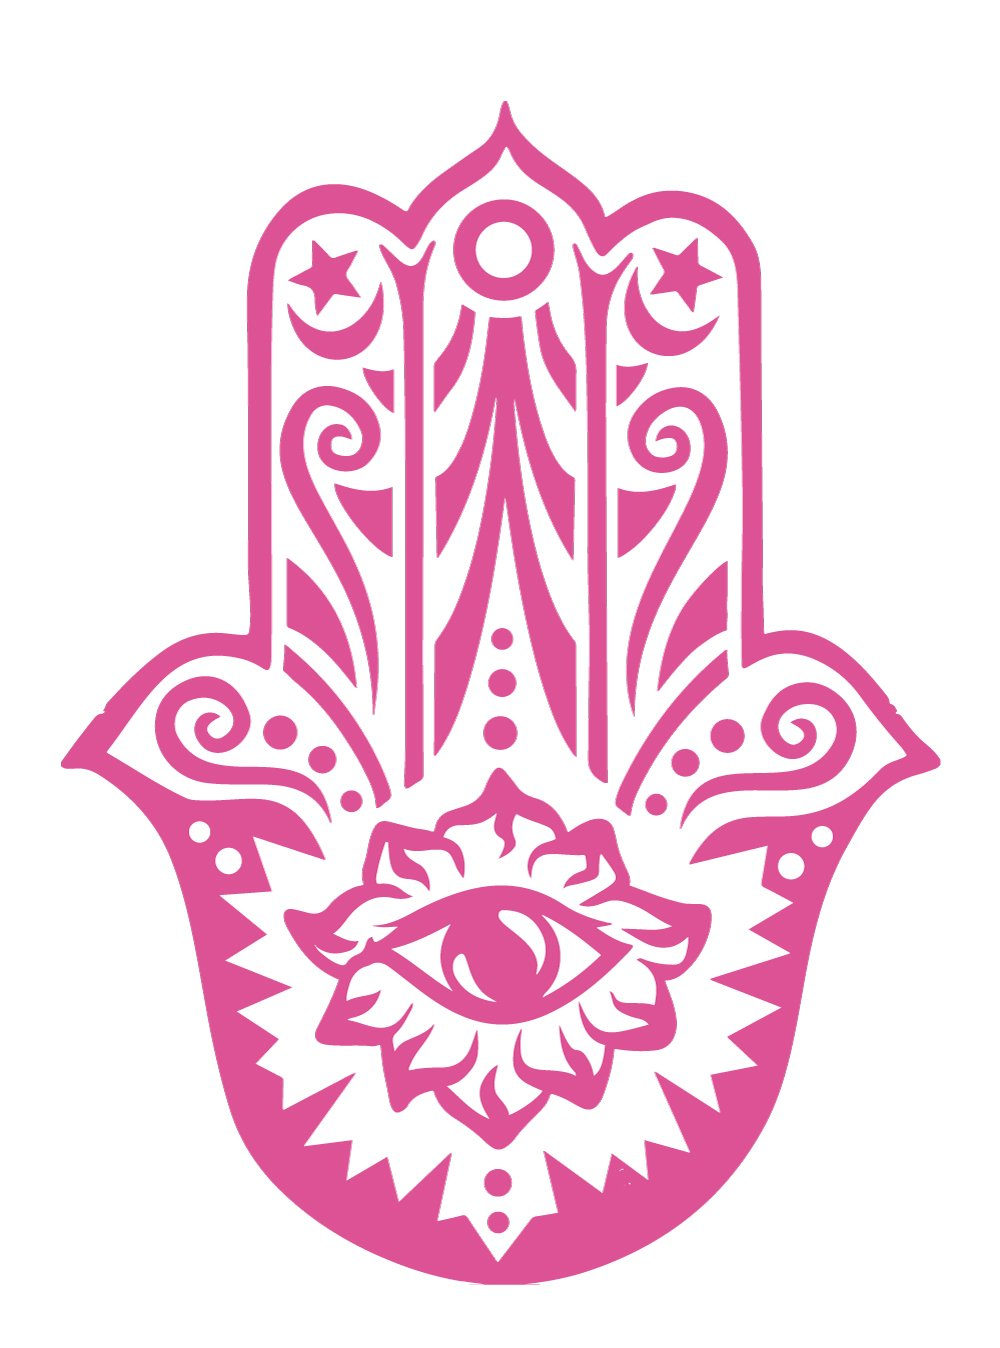 The Hamsa Hand The Hand Of Fatima Symbol And Its Meaning Mythologian